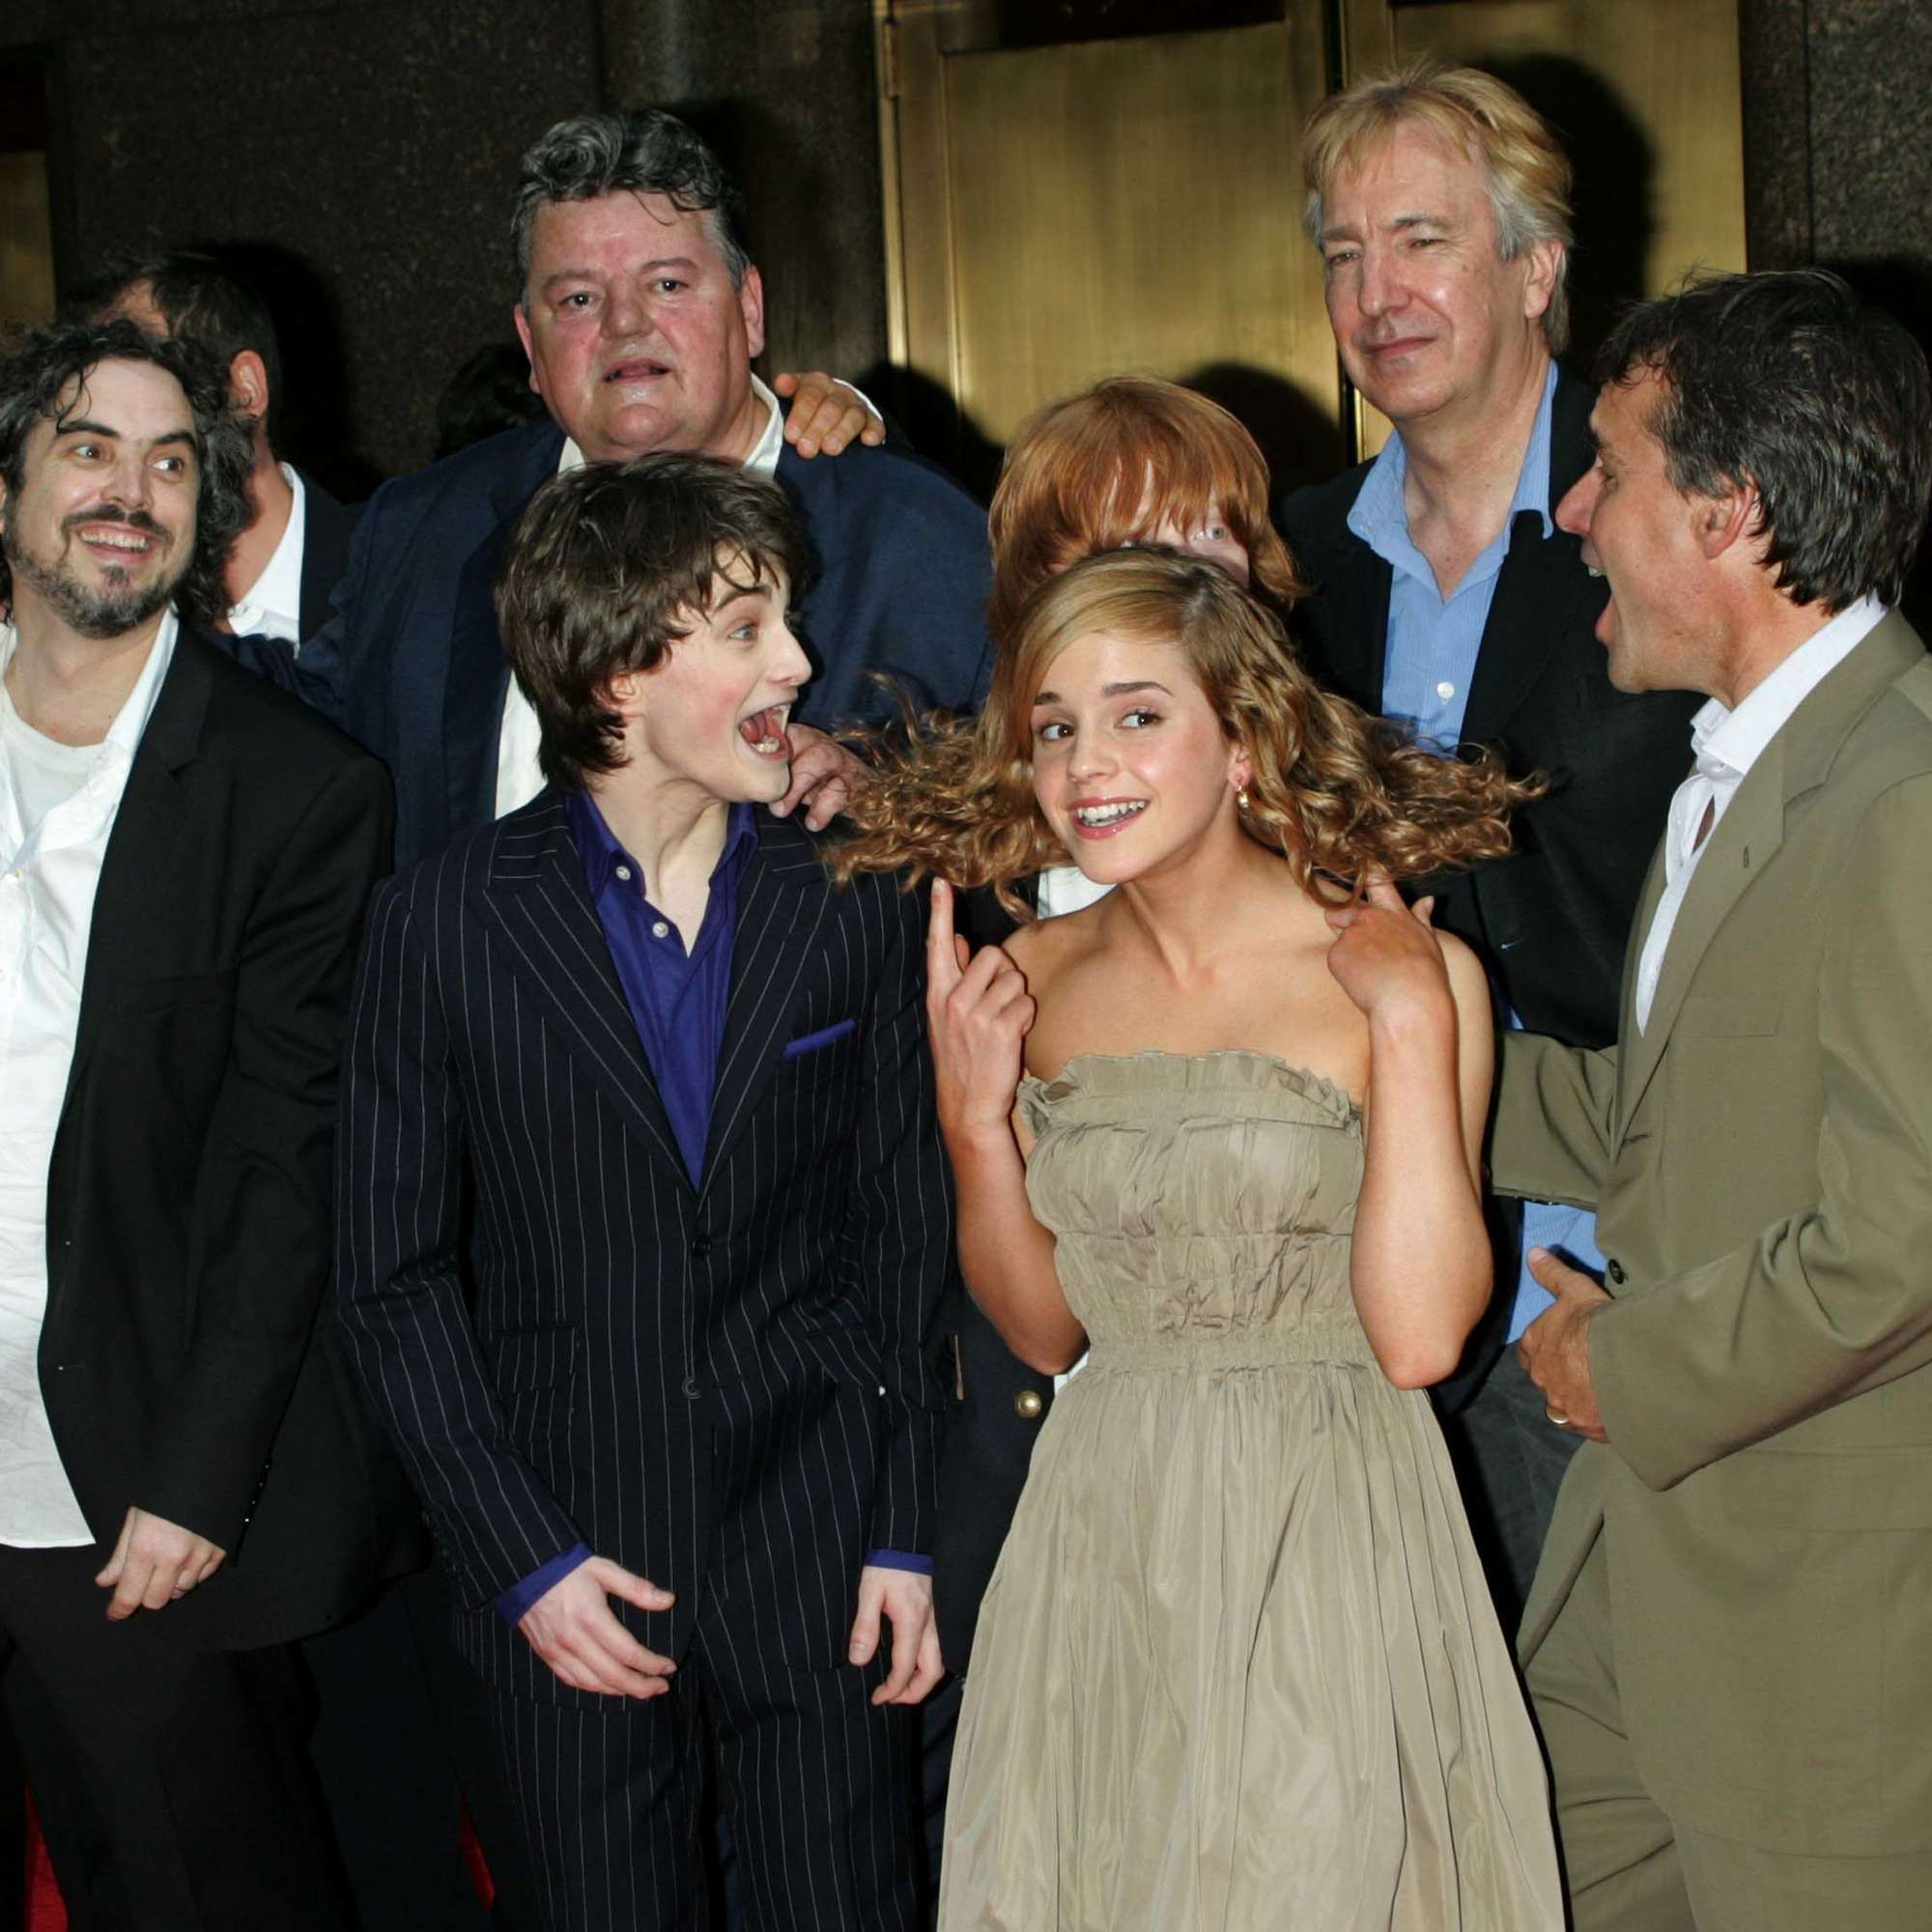 Harry Potter Movie Premiere Photos Are The Best Kind Of Photos